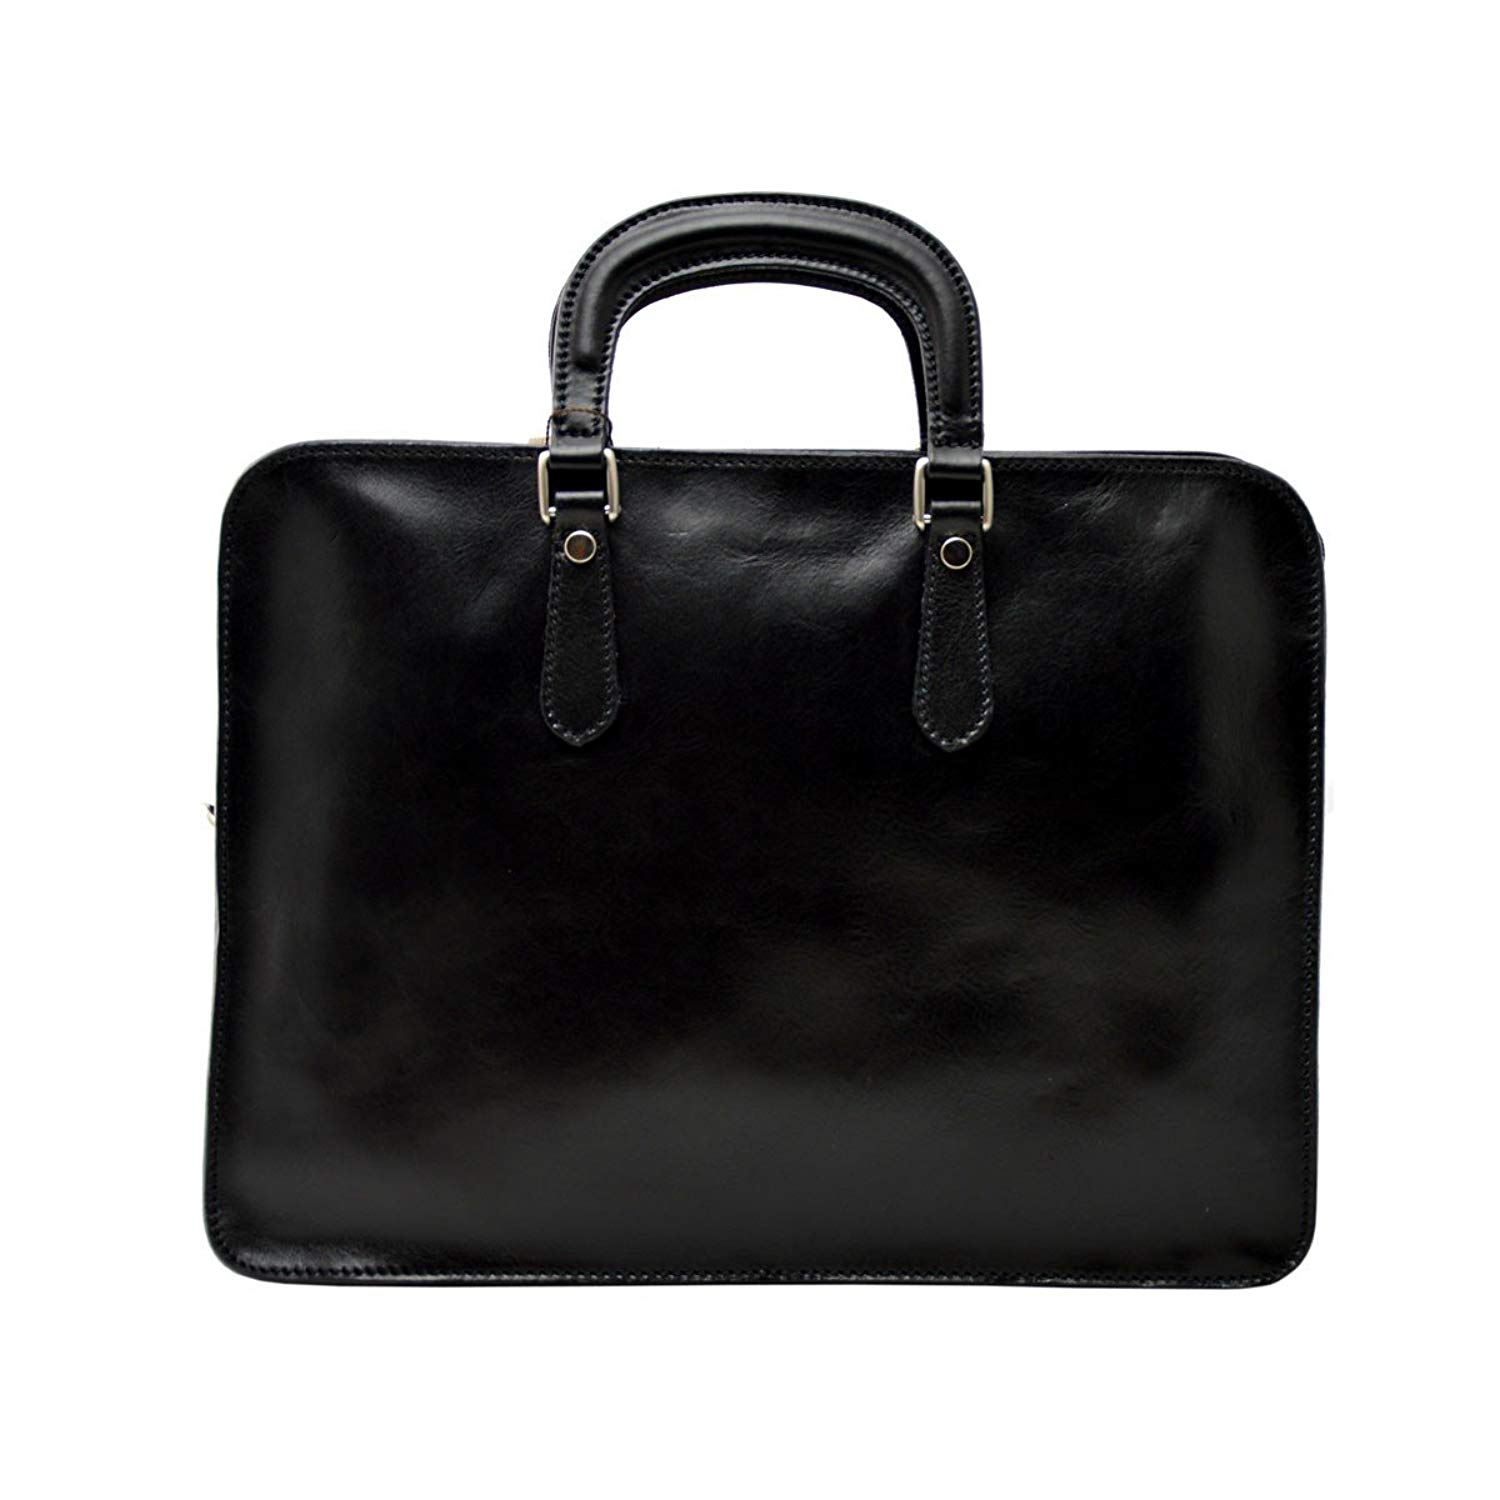 Dream Leather Bags Made in Italy Genuine Leather Genuine Leather Business Briefcase Color Black